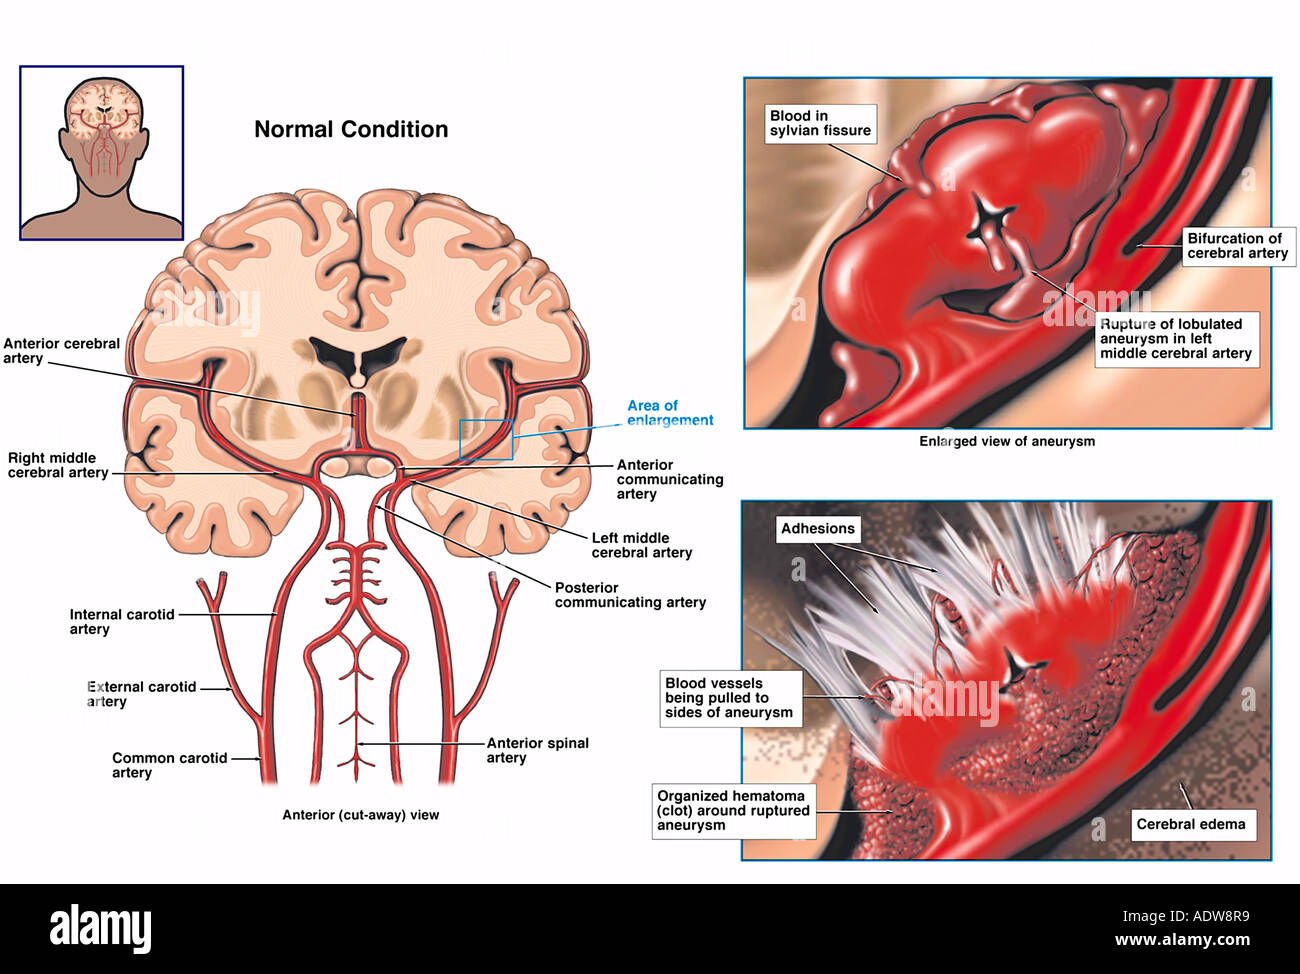 Rupture of Middle Cerebral Artery Aneurysm Stock Photo: 7712632 - Alamy